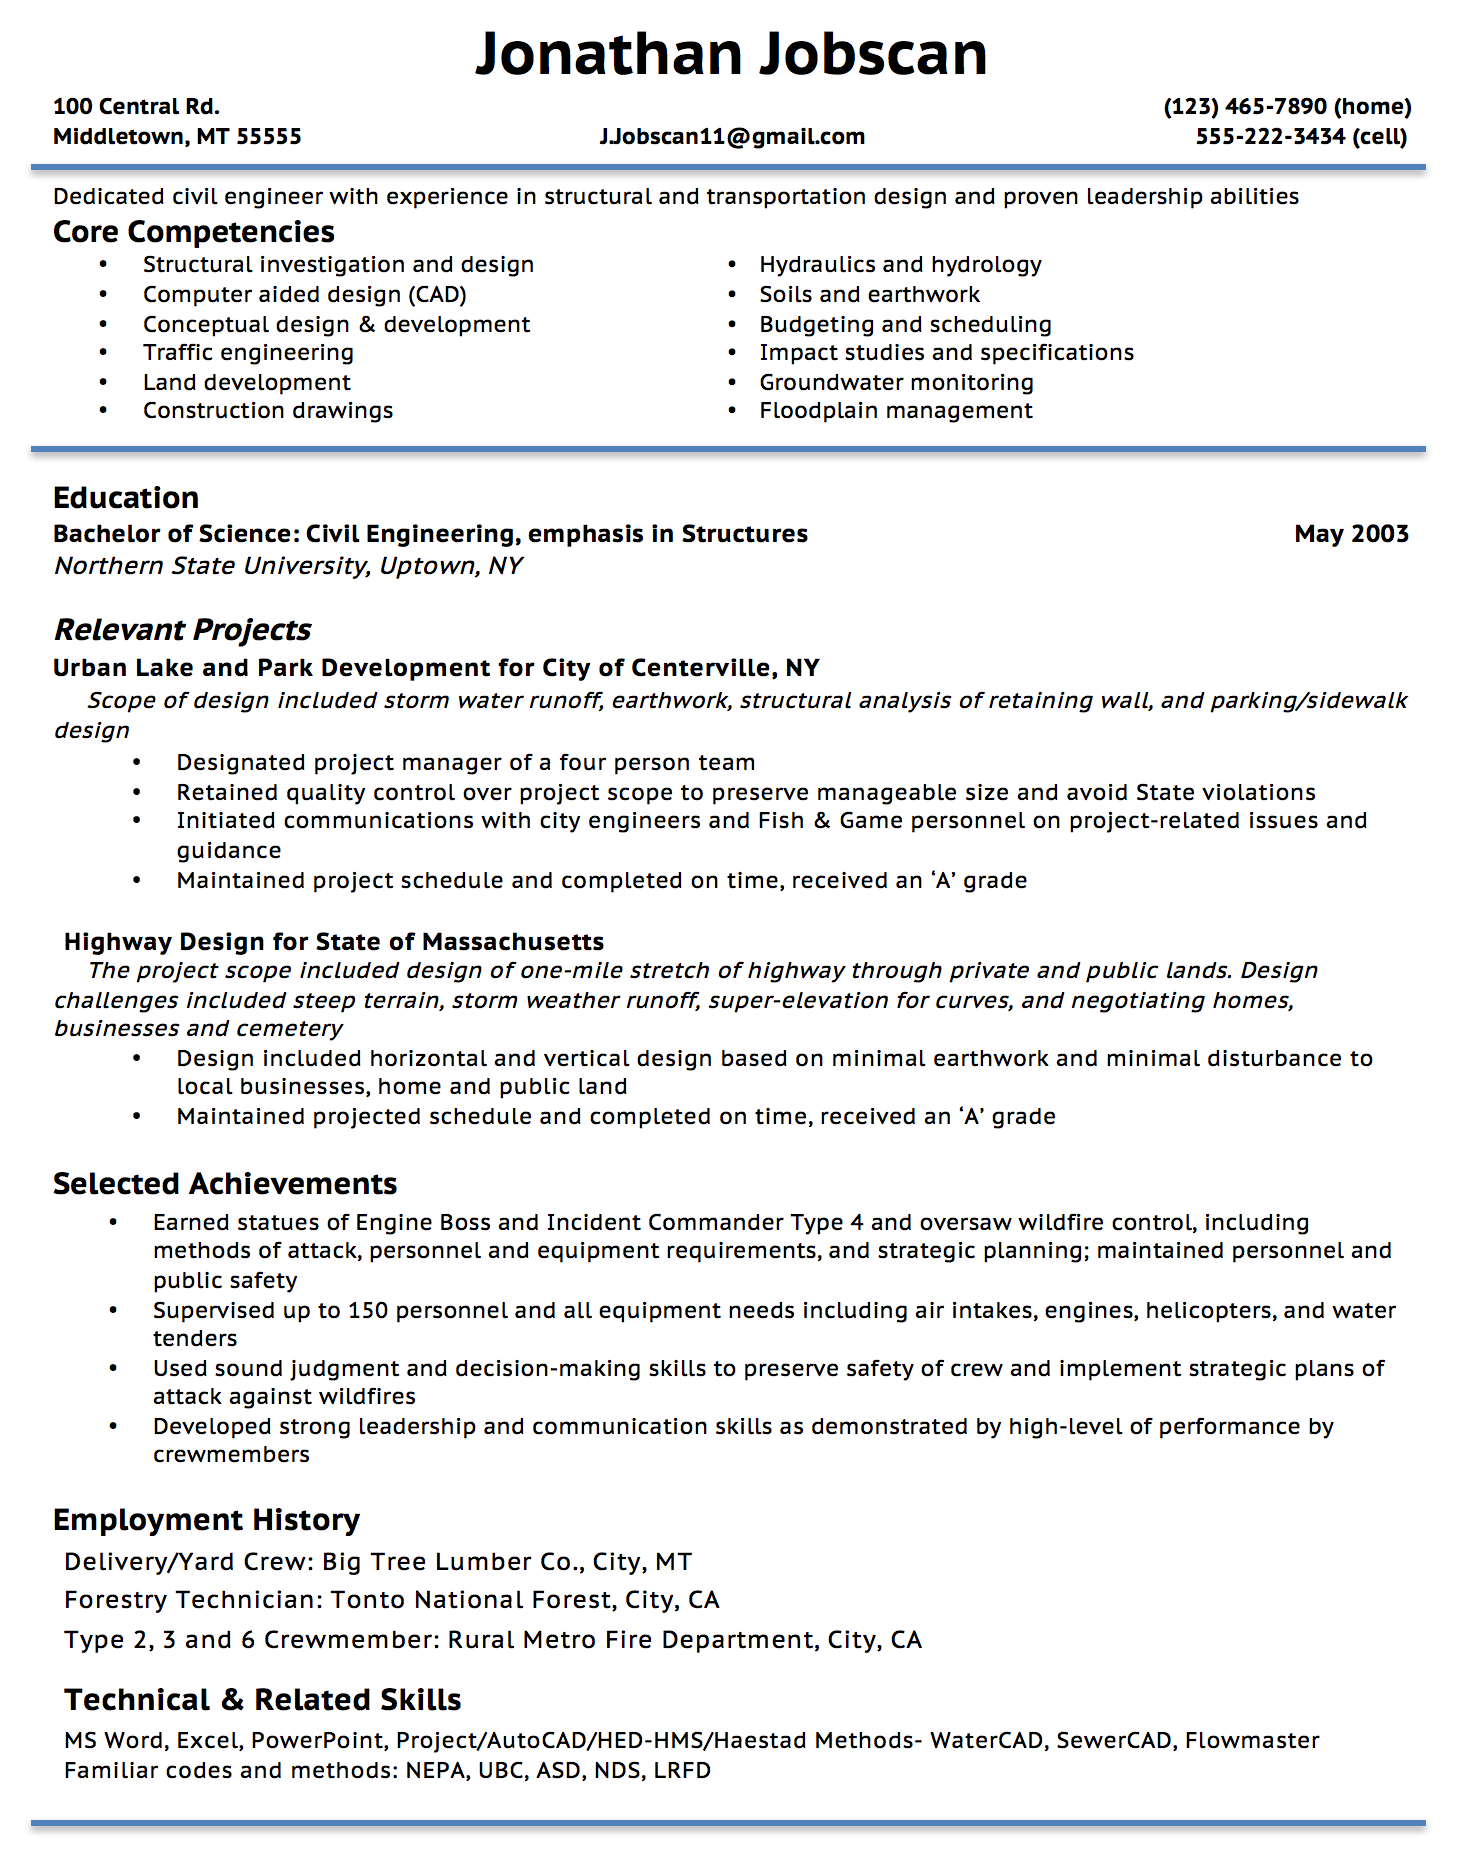 Opposenewapstandardsus  Pretty Resume Writing Guide  Jobscan With Interesting Example Of A Functional Resume Format With Endearing Java Architect Resume Also Purdue Cco Resume In Addition Solutions Architect Resume And Build Resume Online Free As Well As General Resume Sample Additionally Sap Project Manager Resume From Jobscanco With Opposenewapstandardsus  Interesting Resume Writing Guide  Jobscan With Endearing Example Of A Functional Resume Format And Pretty Java Architect Resume Also Purdue Cco Resume In Addition Solutions Architect Resume From Jobscanco